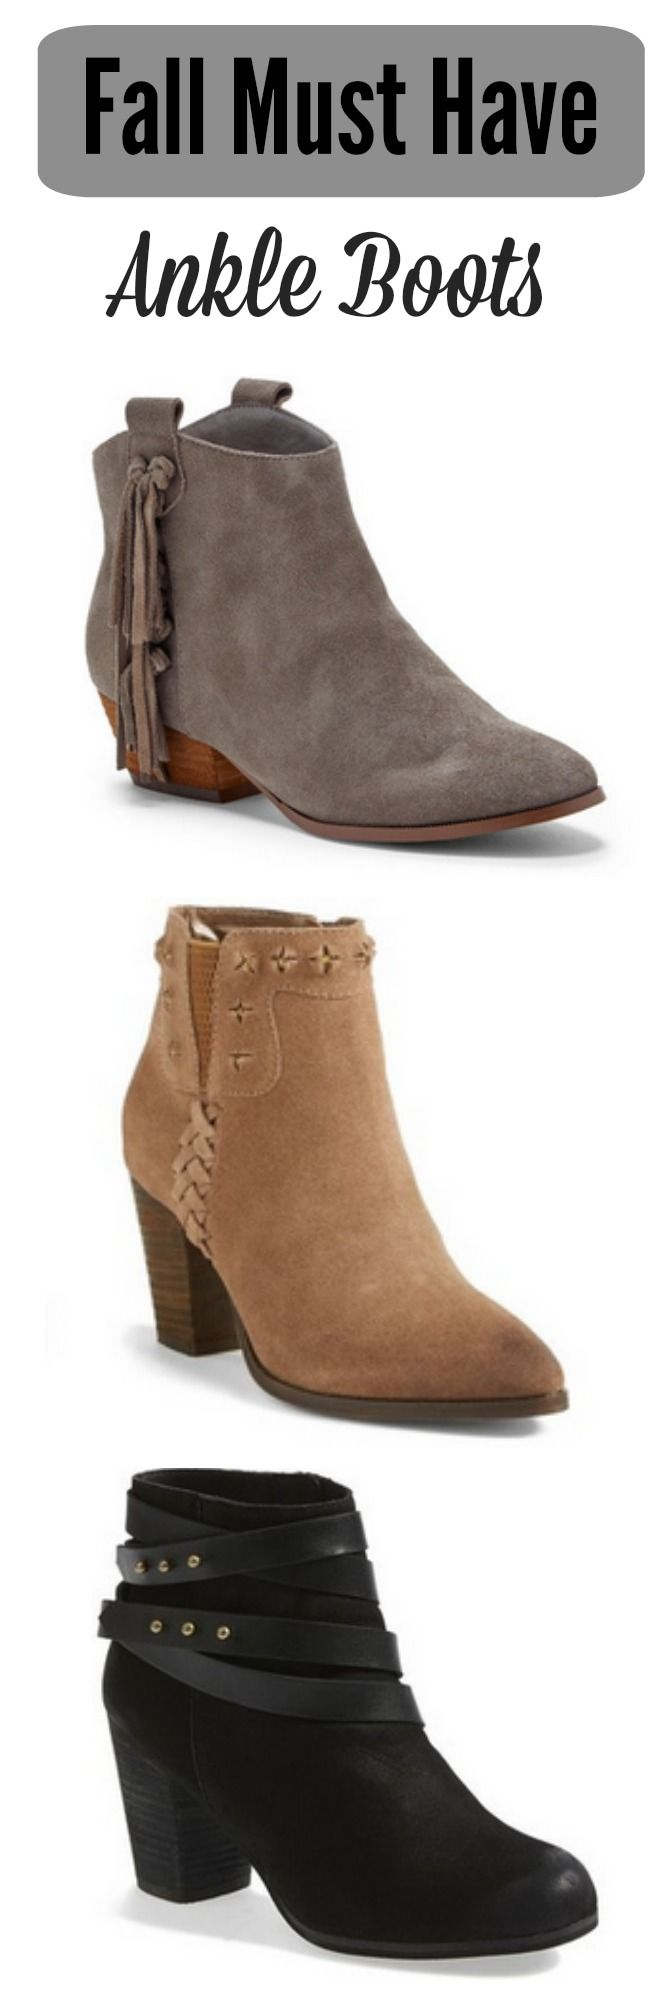 10 Fall Ankle Boots